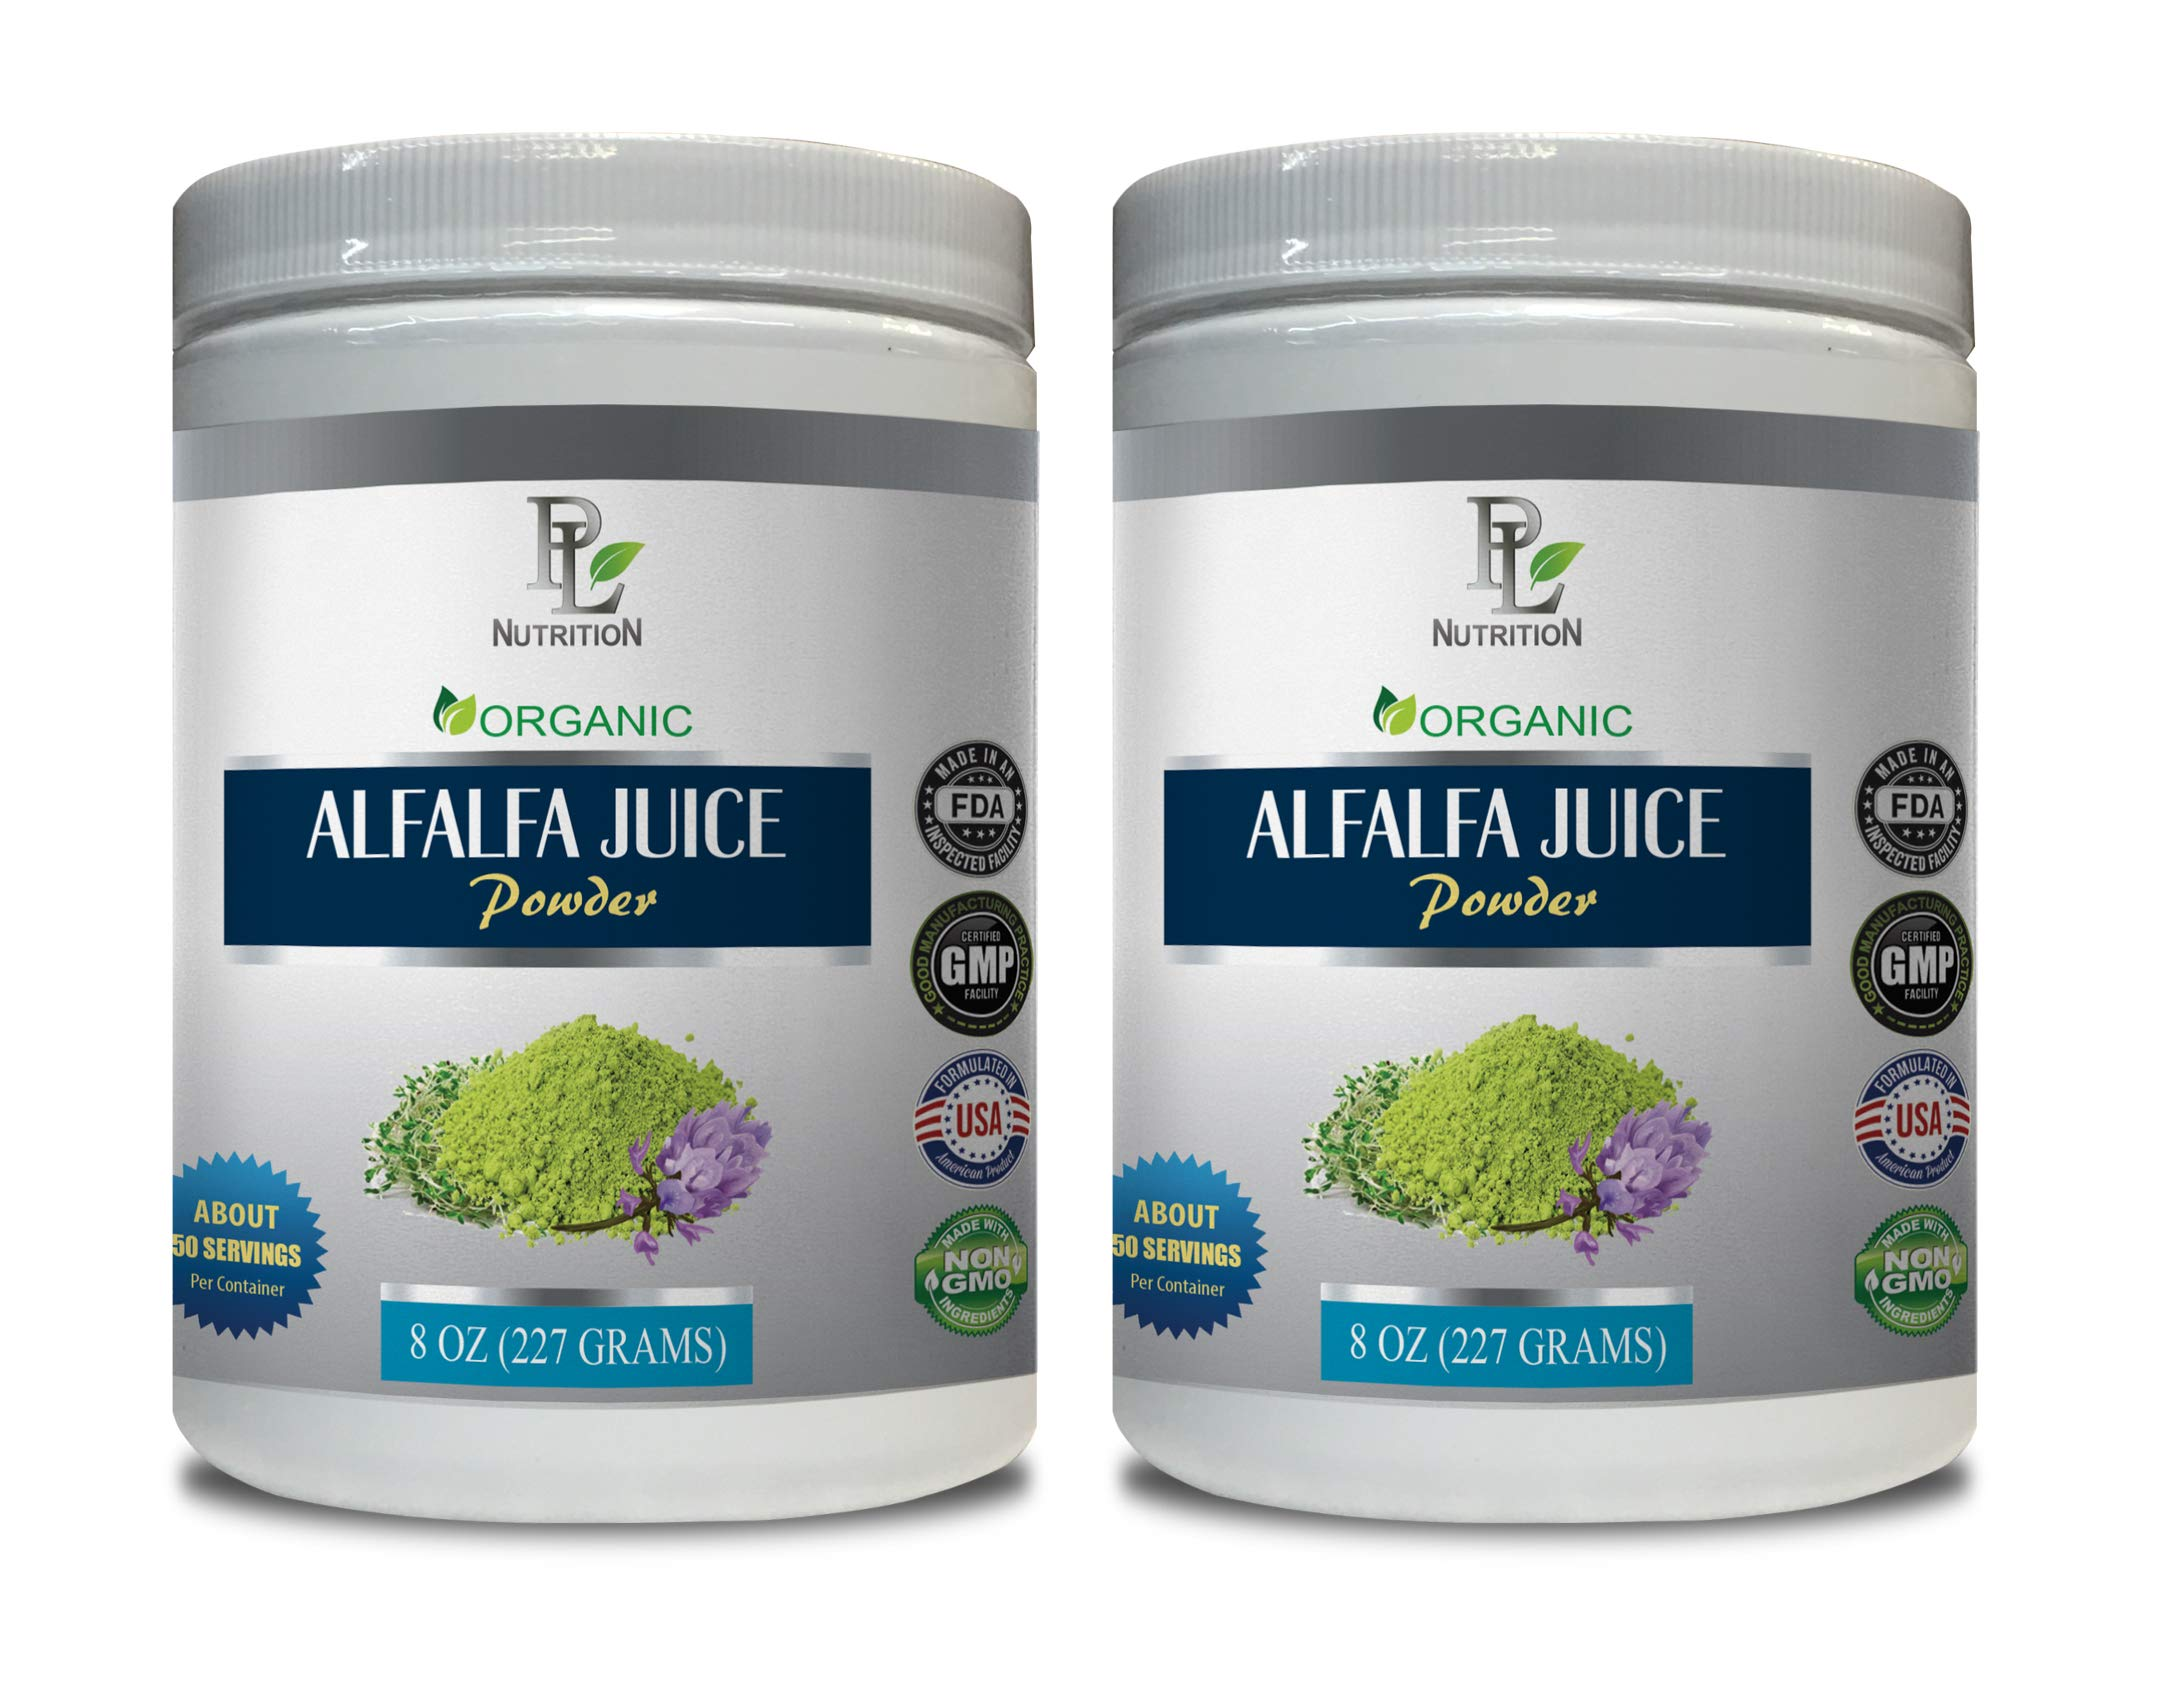 Cholesterol lowering Products - Alfalfa Organic - Juice Powder - Alfalfa Supplement - 2 Cans 16 OZ (100 Servings)